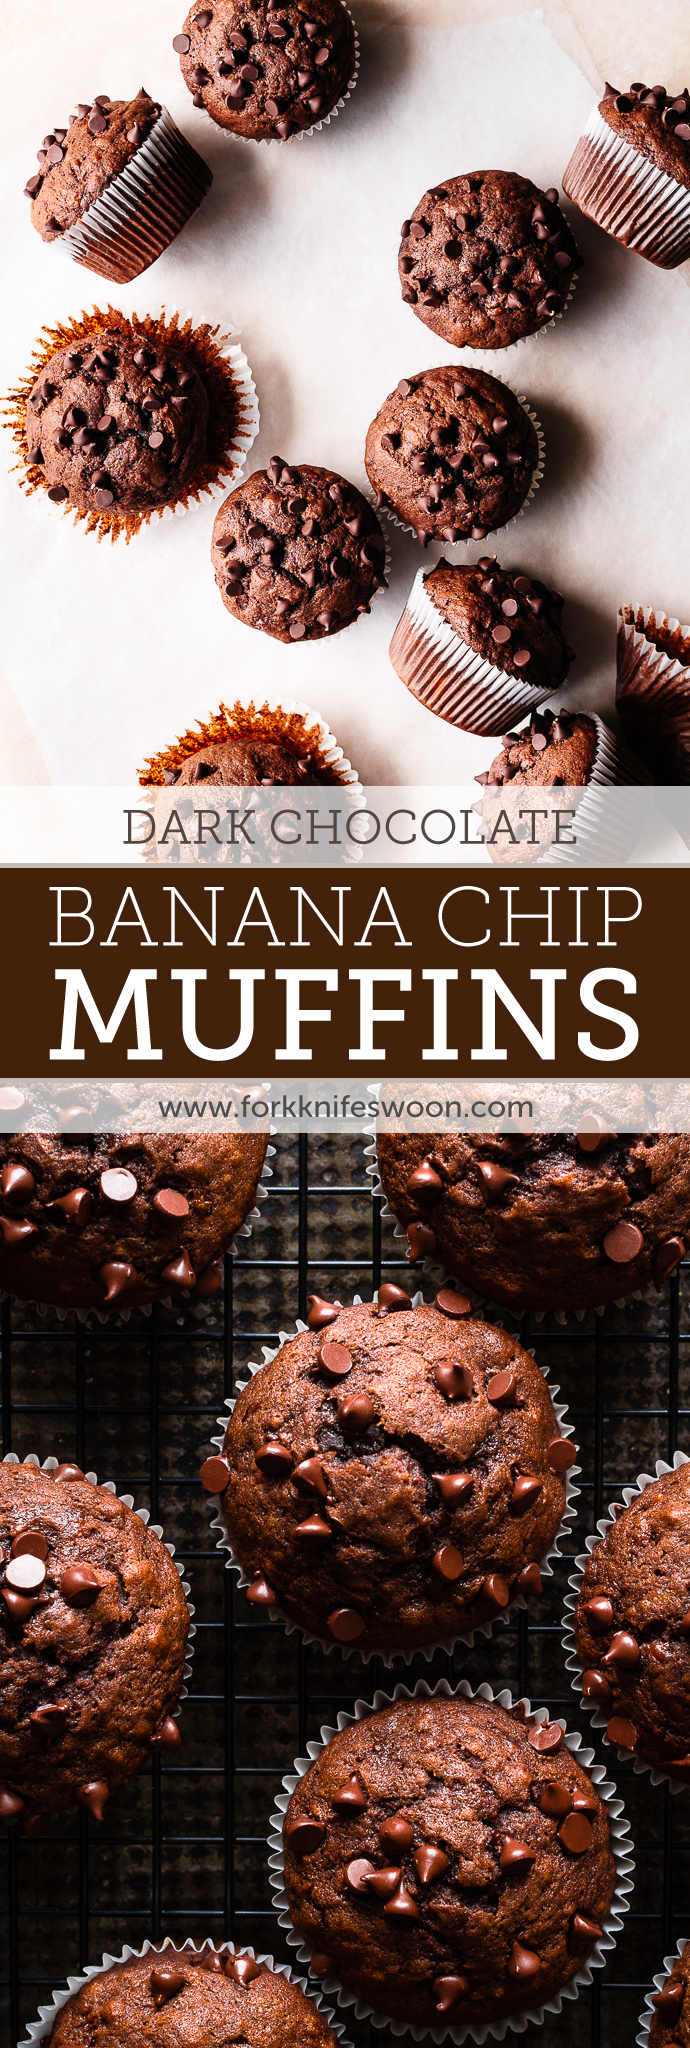 One Bowl Dark Chocolate Banana Muffins | Fork Knife Swoon @forkknifeswoon